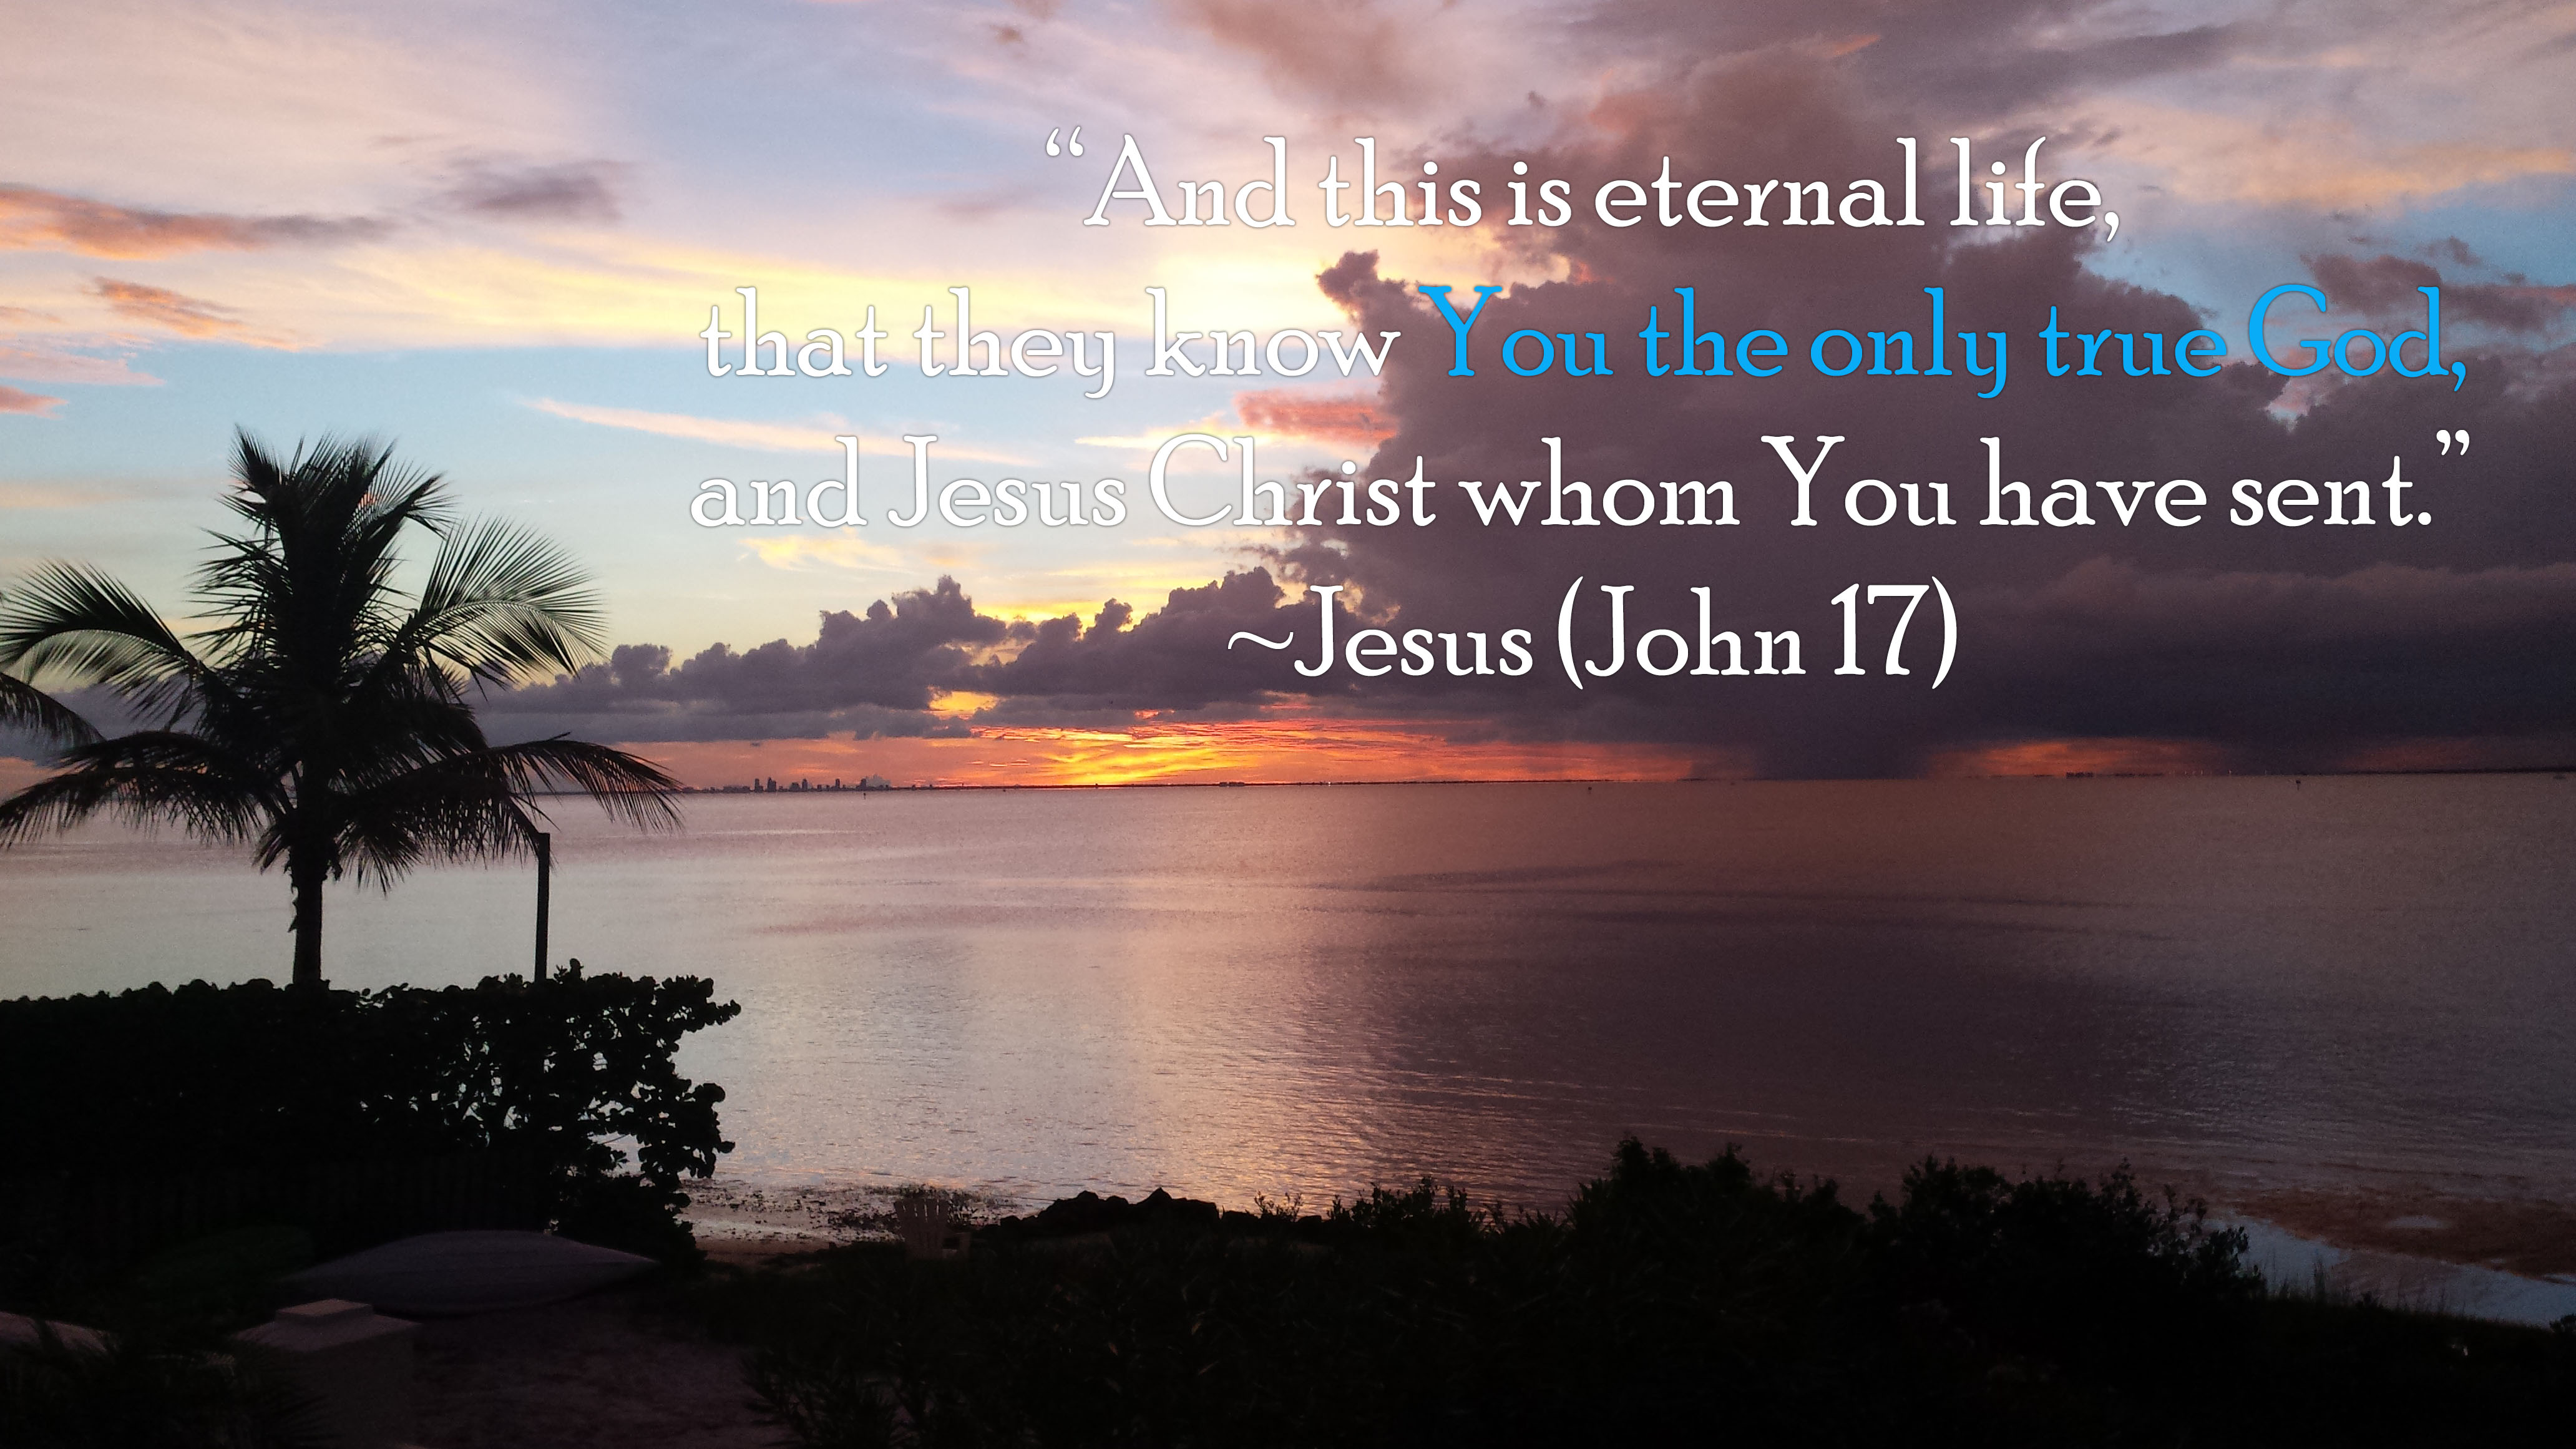 And This is Eternal Life … - You Are the One I Want